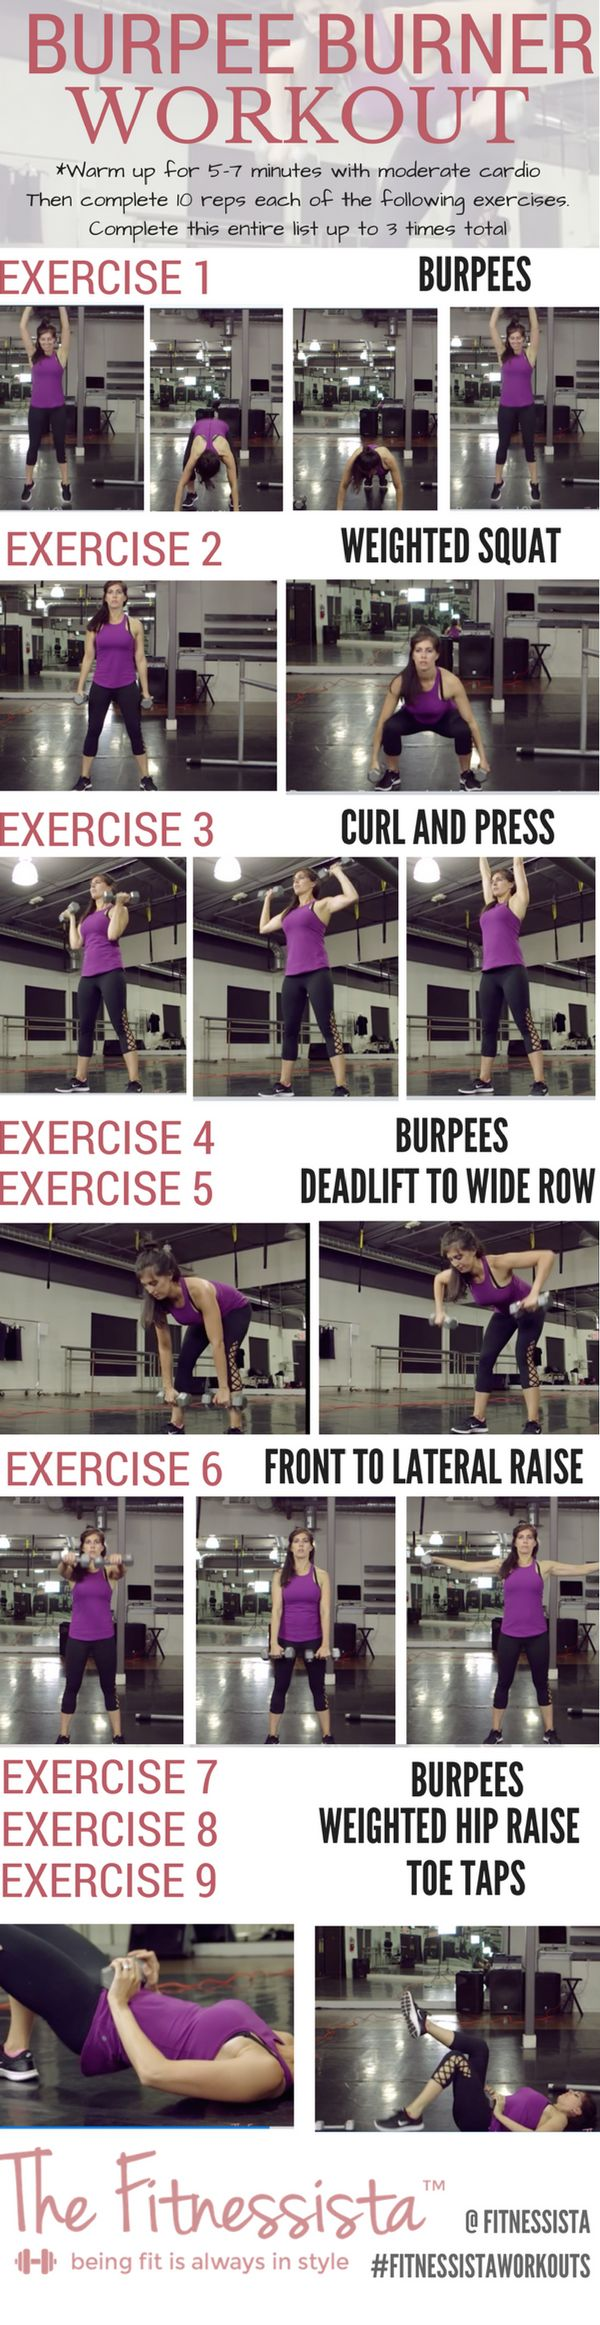 A total body burpee workout! Burpee blasts fire up your heat rate and burn major calories. Save for the next time you want a killer strength and cardio workout! fitnessista.com How to lose weight fast in 2017 get ready to summer #weightloss #fitness